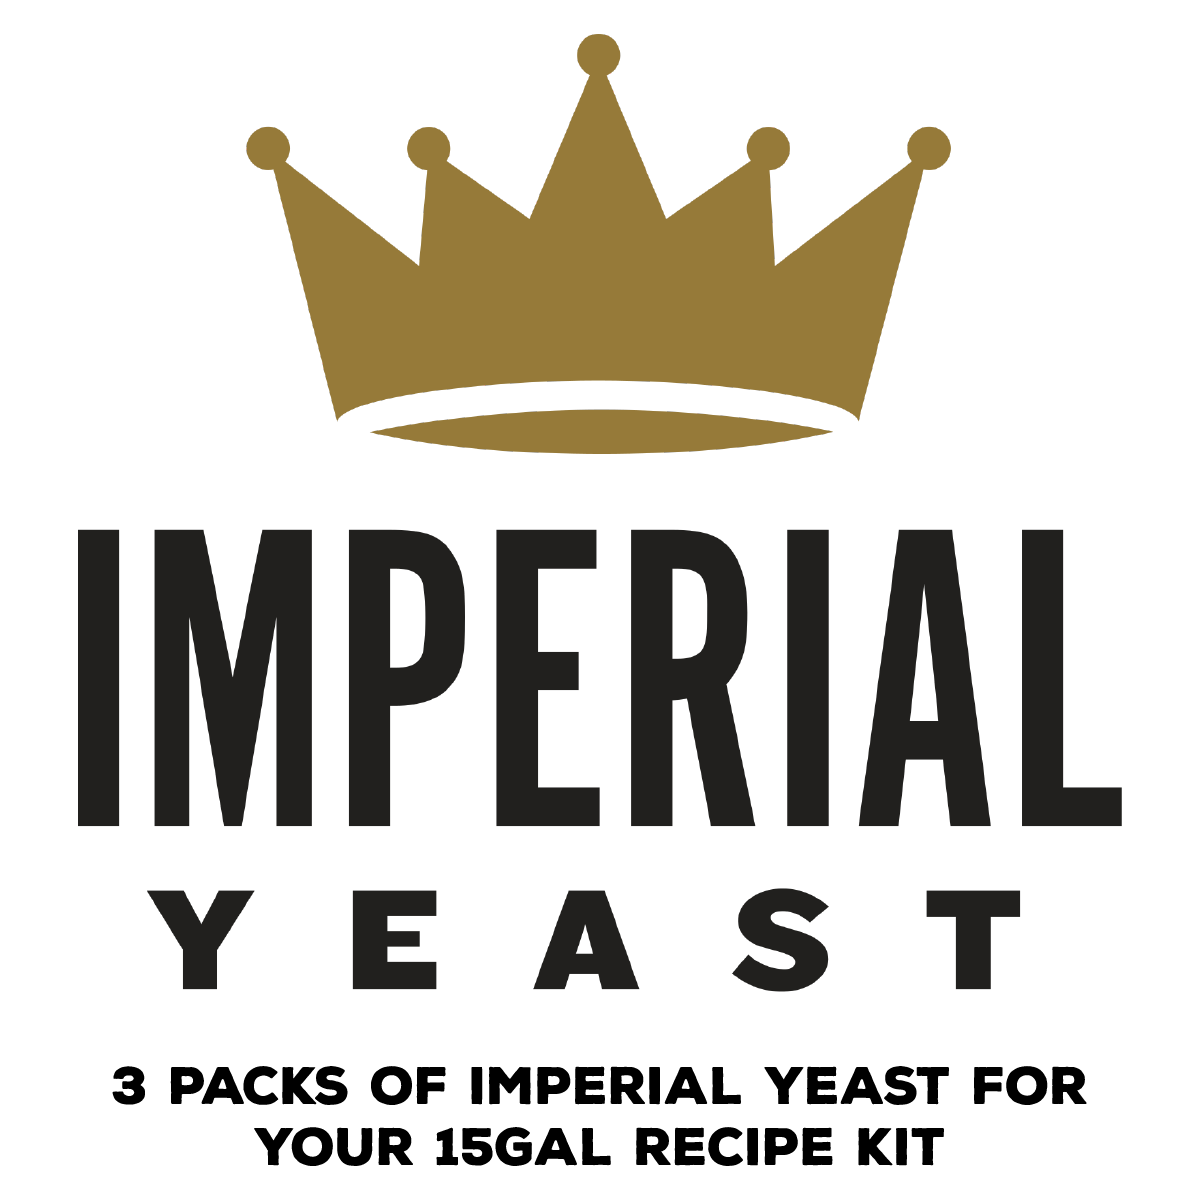 brautag-comes-with-3-packs-of-liquid-imperial-yeast-1200.png